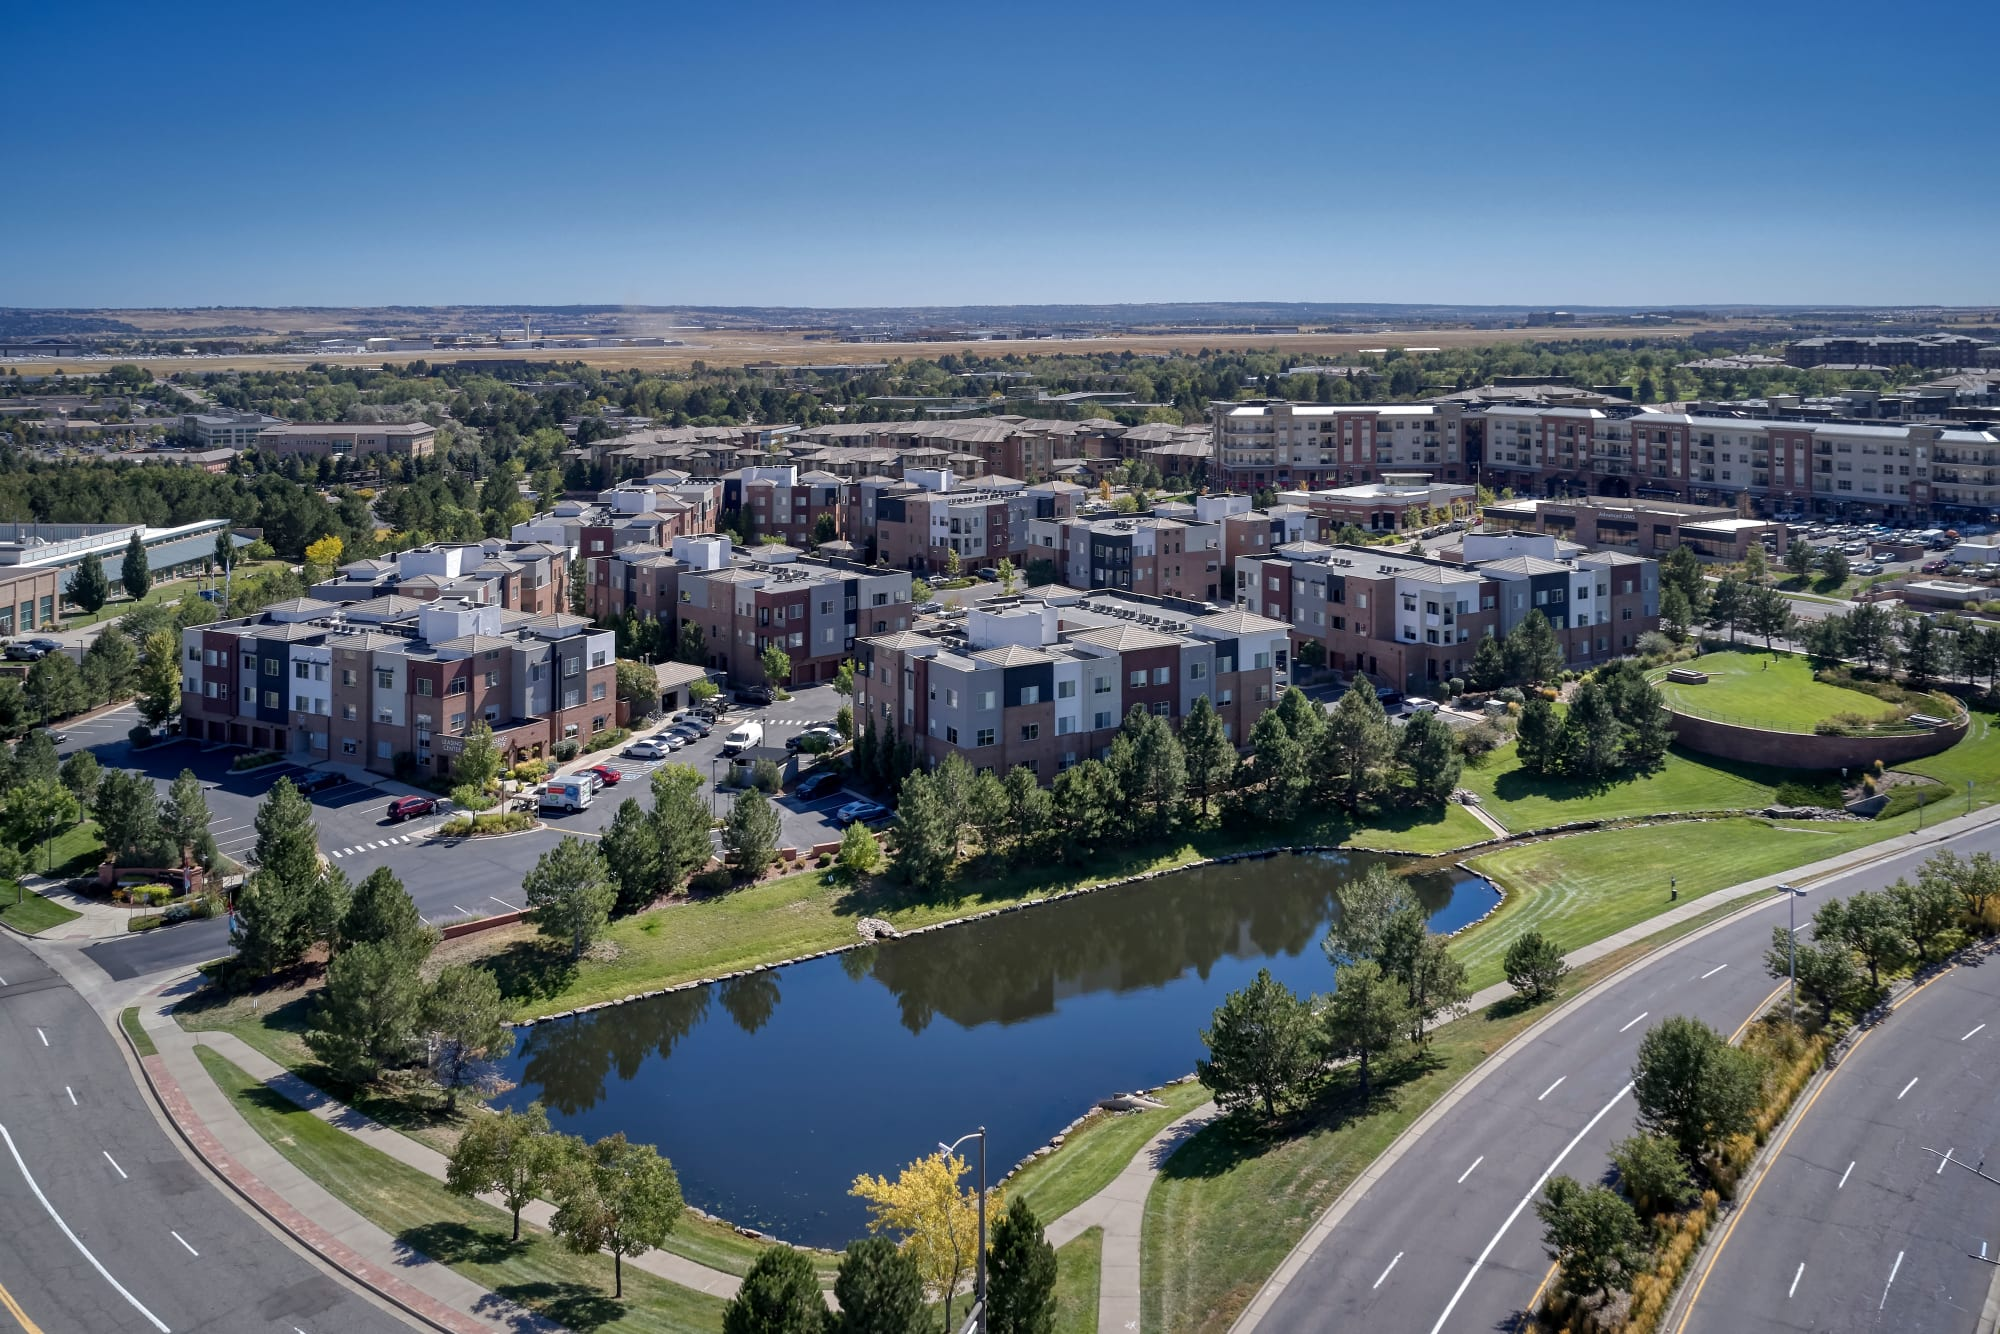 Aerial view of the property and surrounding area at The Rail at Inverness in Englewood, Colorado